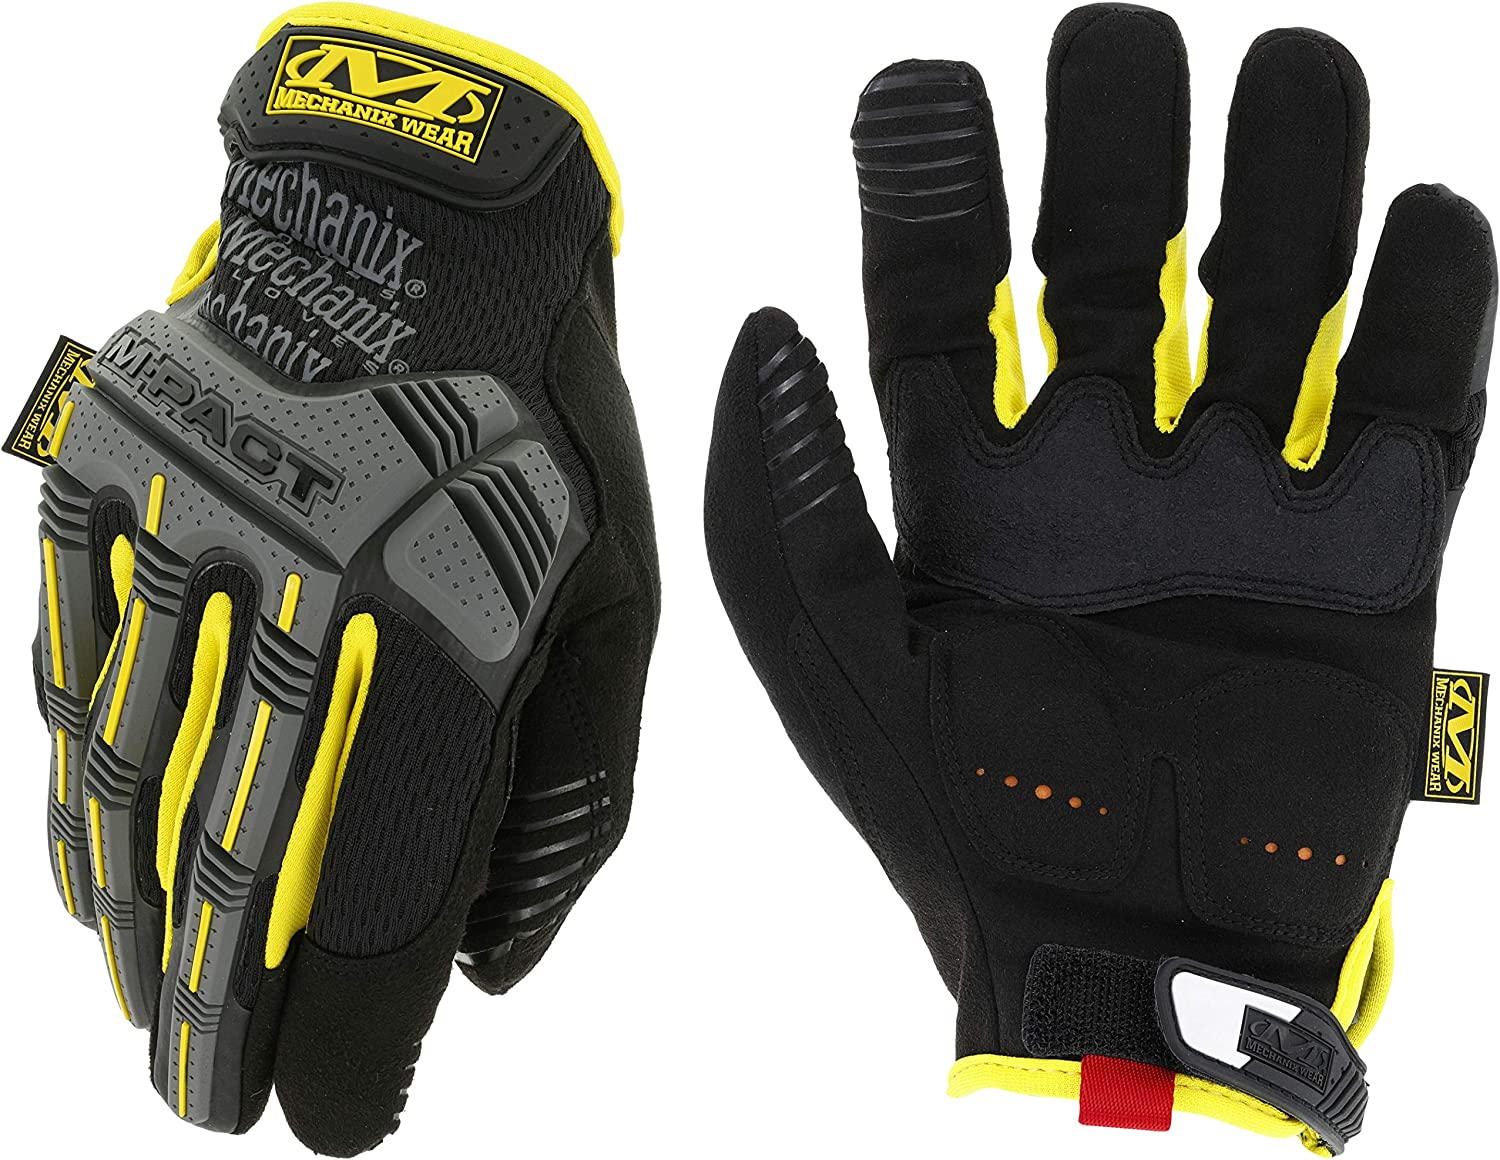 X-SMALL Mechanix Wear Covert M-PACT Gloves Touch Screen Capable TAA Black